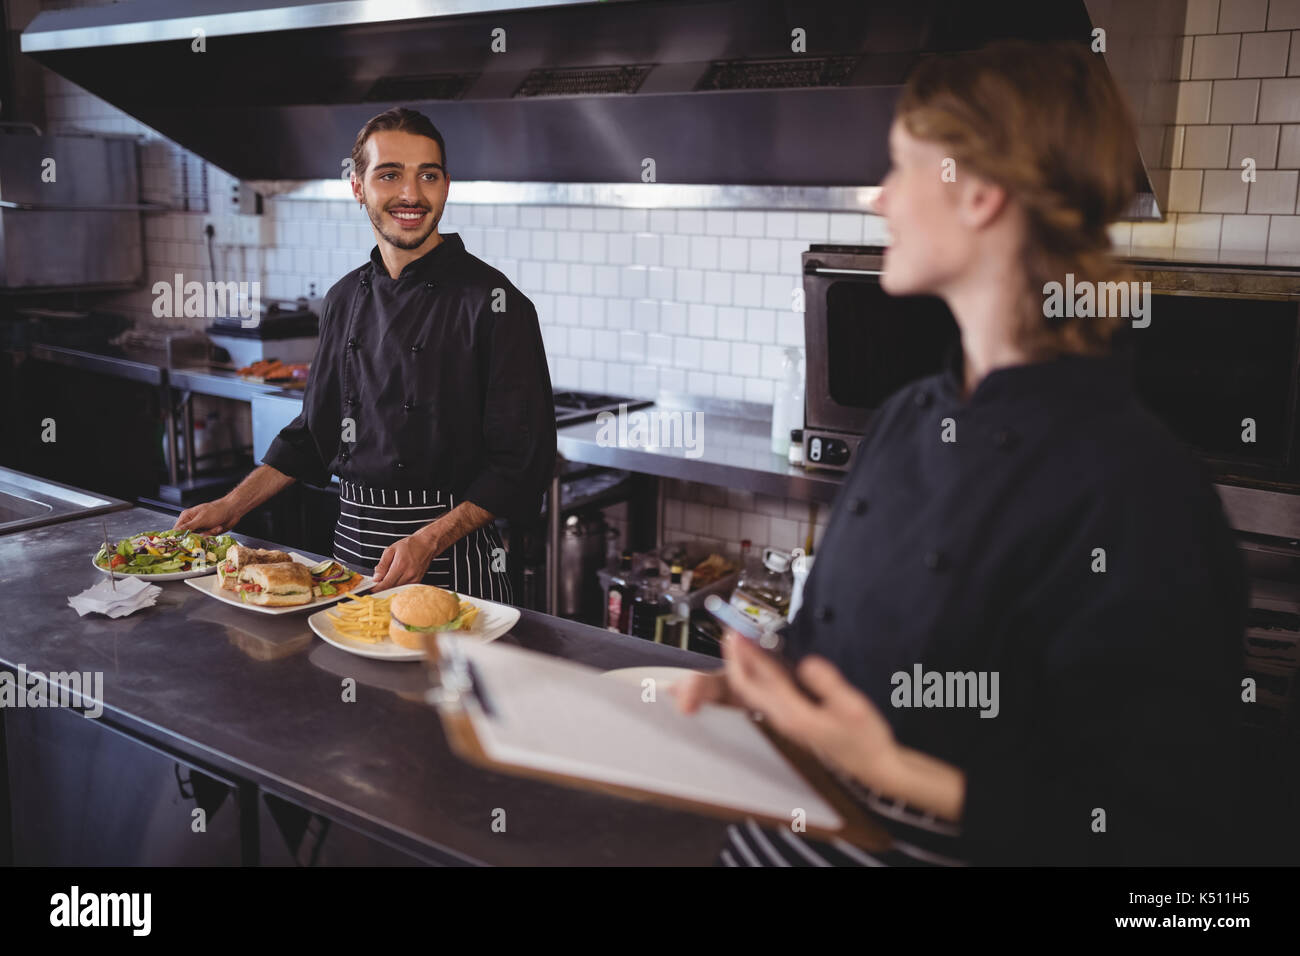 Young waiter preparing food while looking at waitress in coffee shop - Stock Image